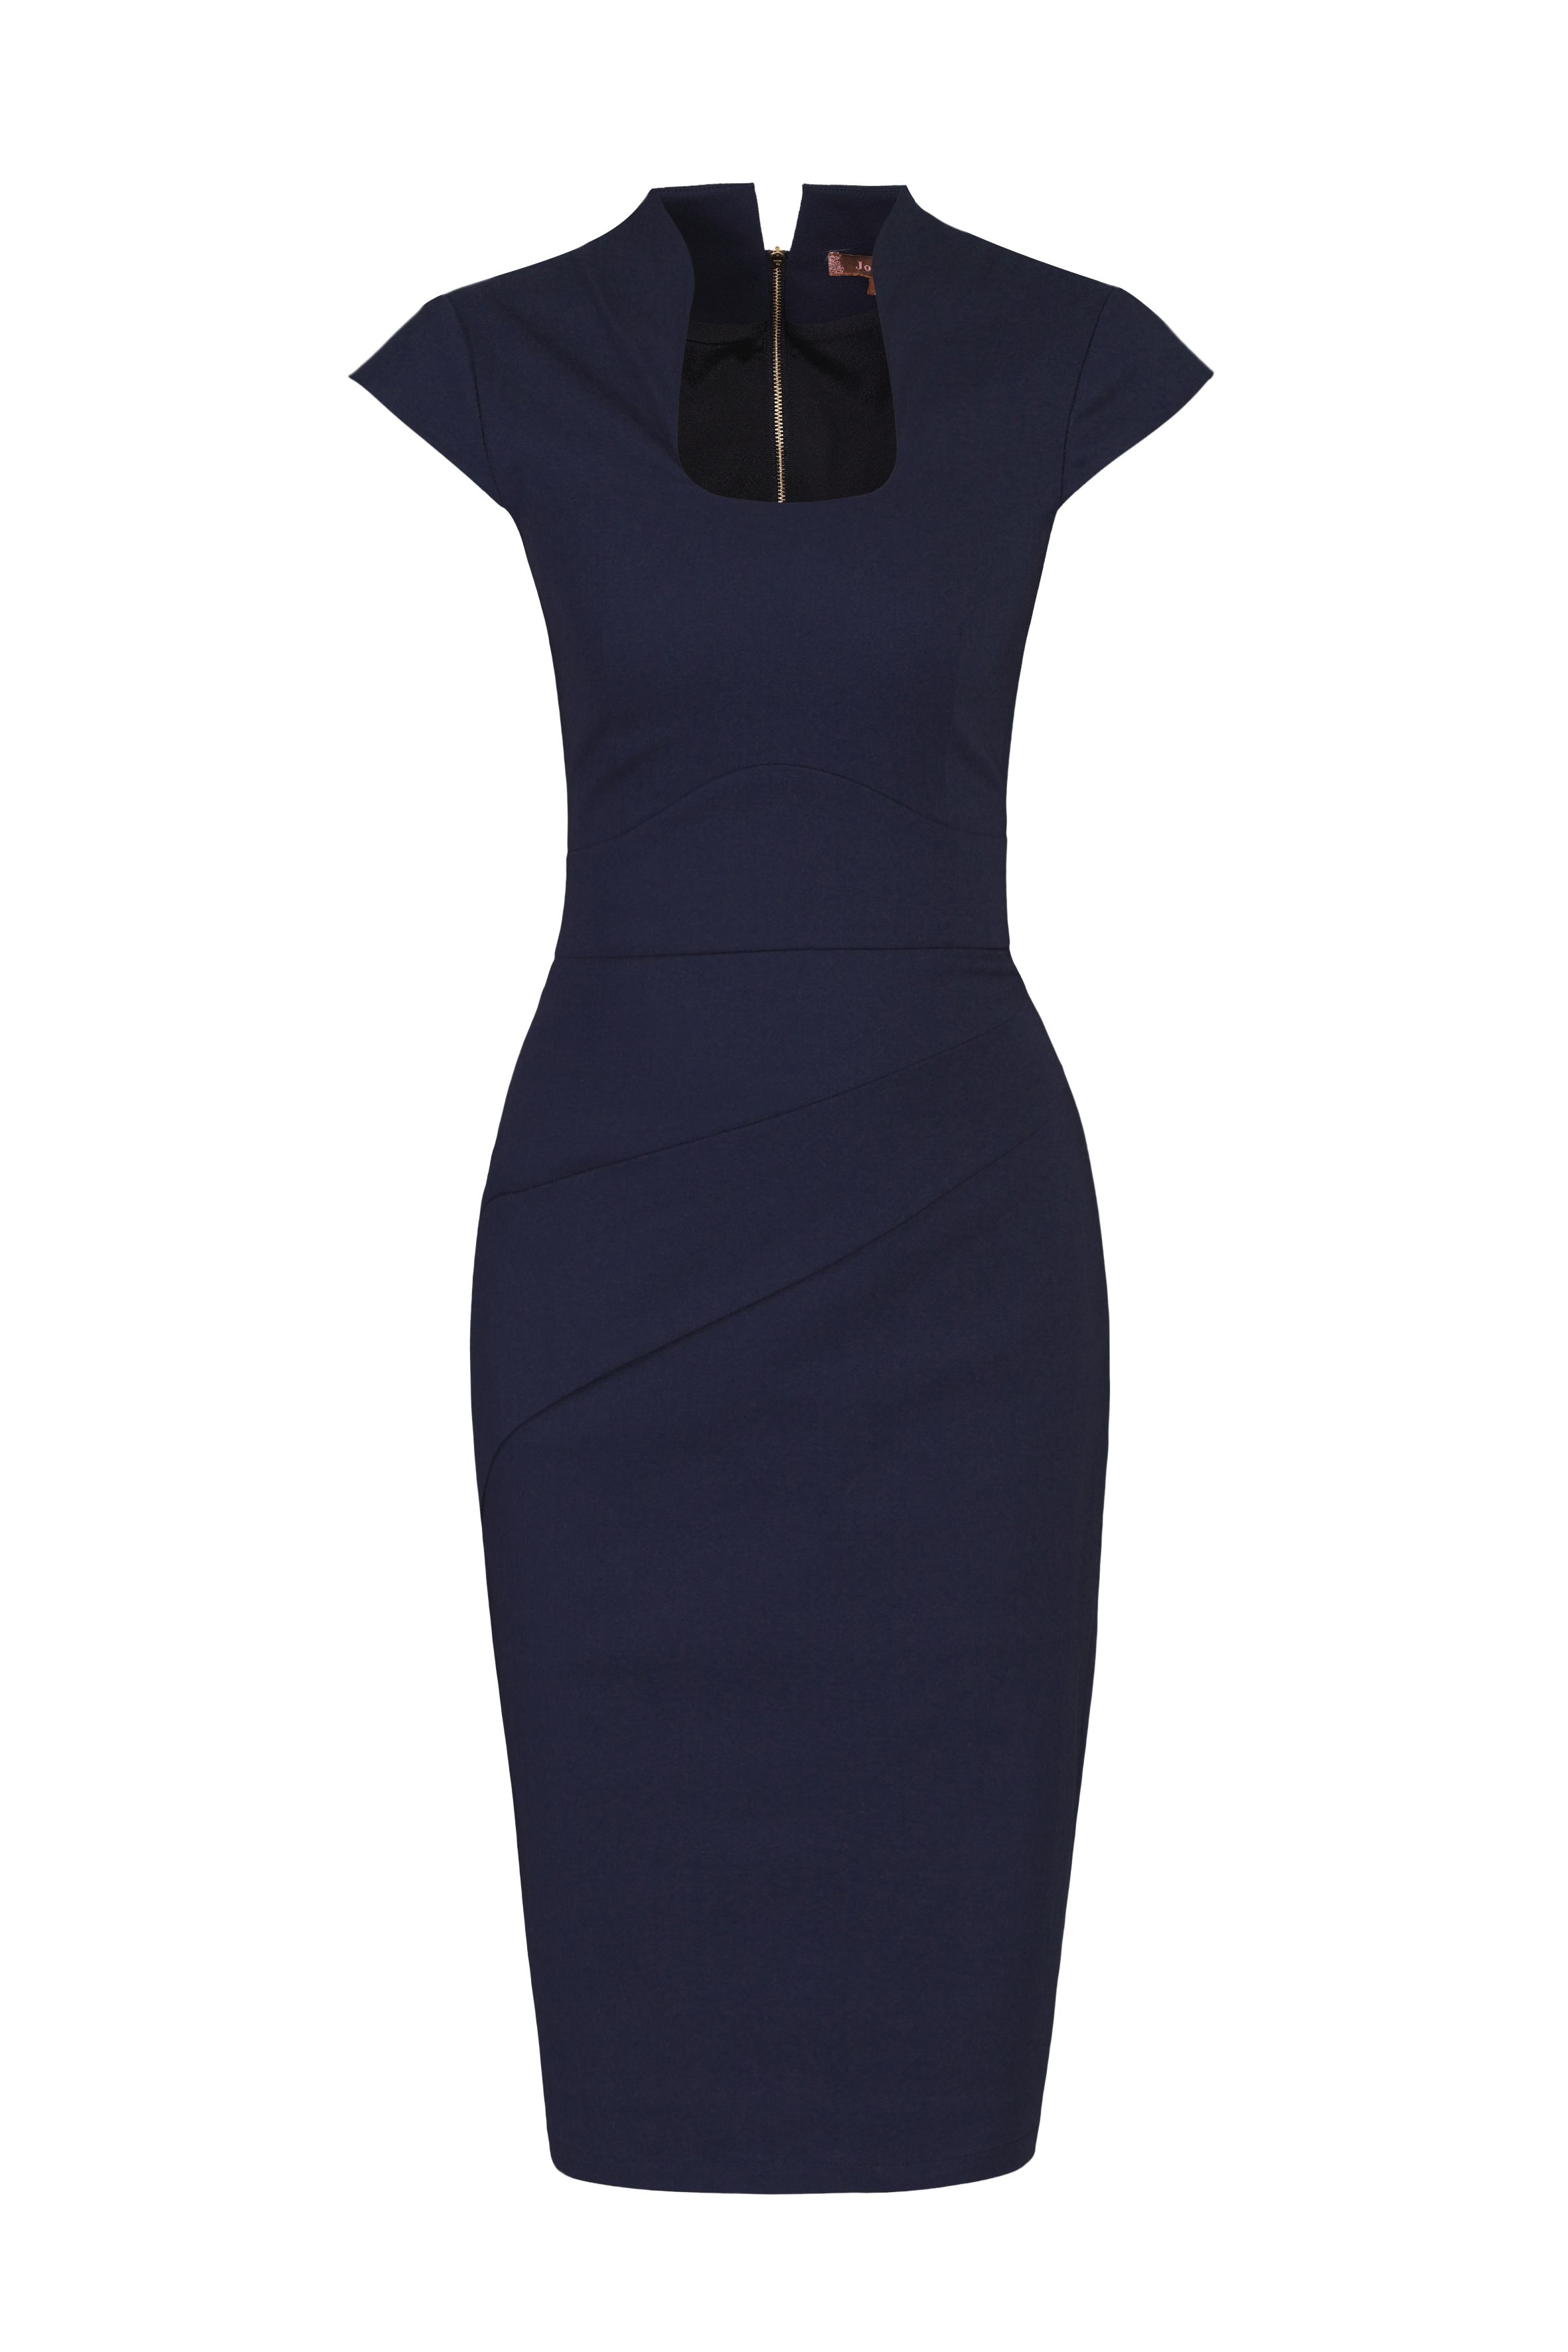 Jolie Moi Retro Neckline Fold Detail Dress, Blue